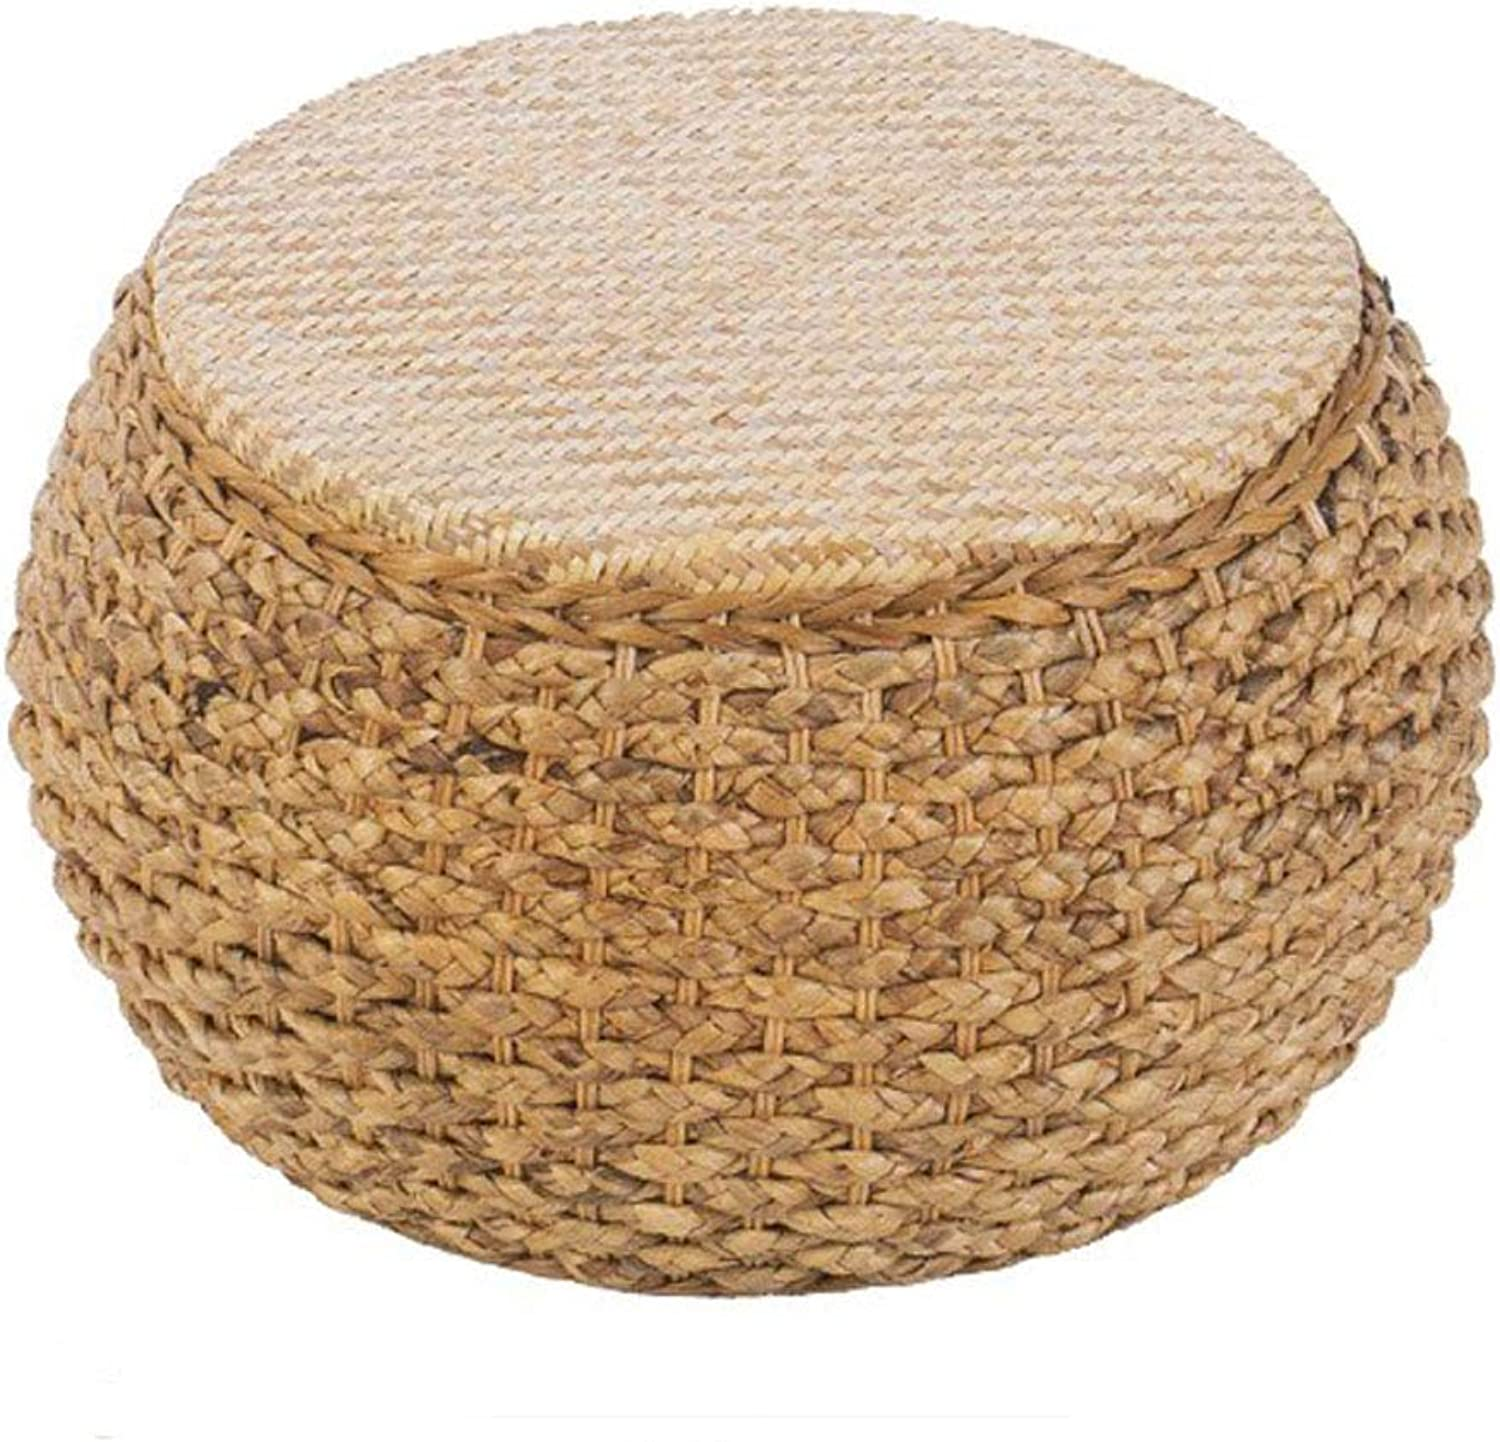 Rattan Bench Home Footstool, Round Home Coffee Table Stool Rustic Style Sofa Stool, Suitable for Living Room, Courtyard (Multi-Size Optional)